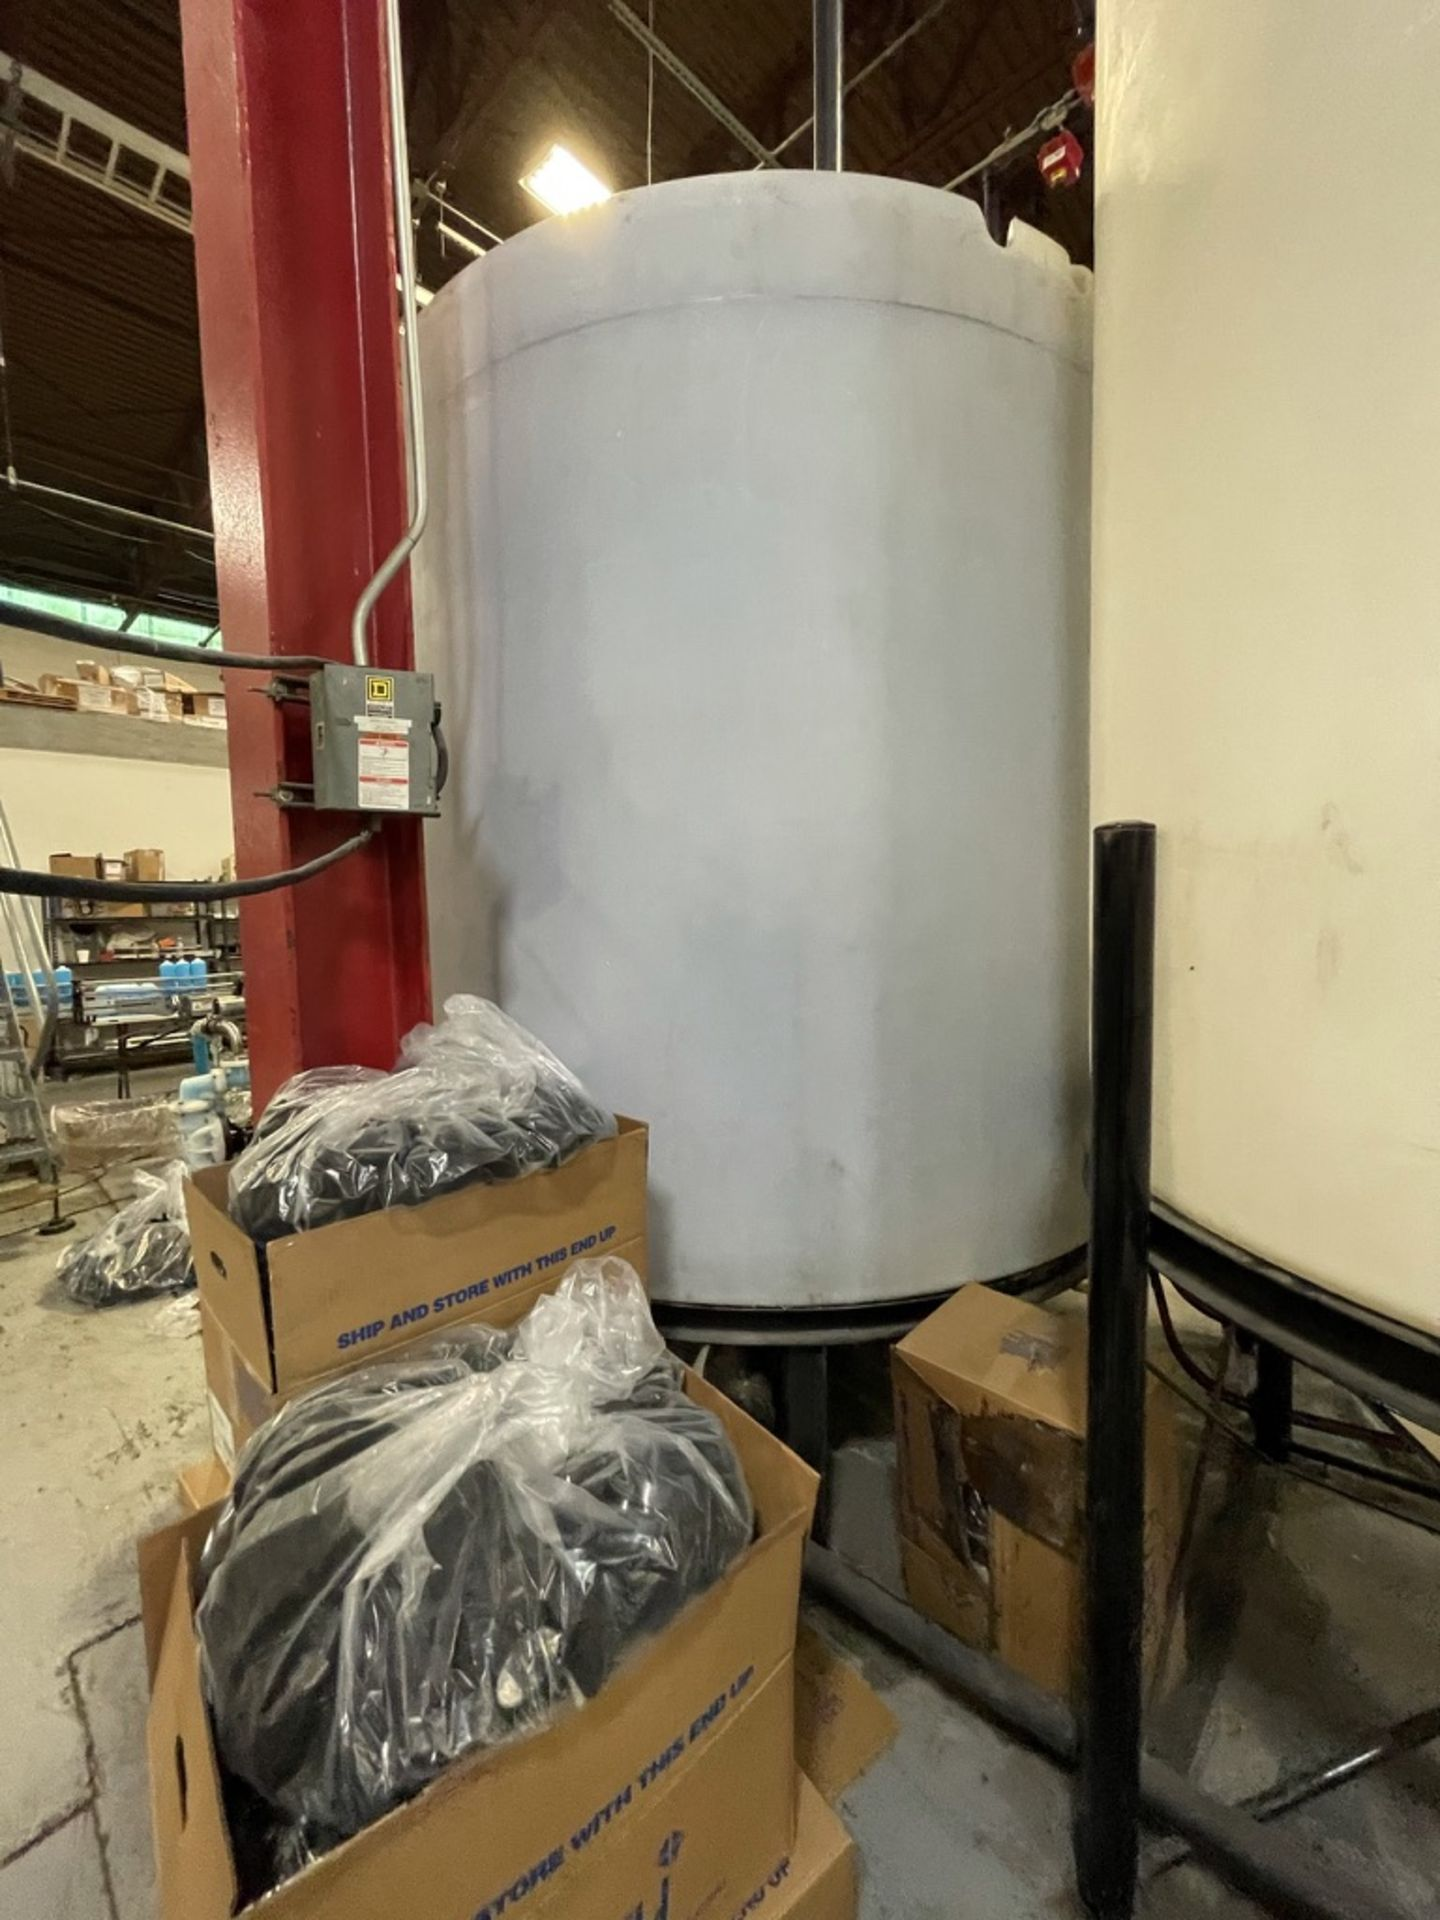 ACE ROTO-MOLD APPROX. 2,200 GALLON TANK WITH STEEL FRAME - Image 4 of 4